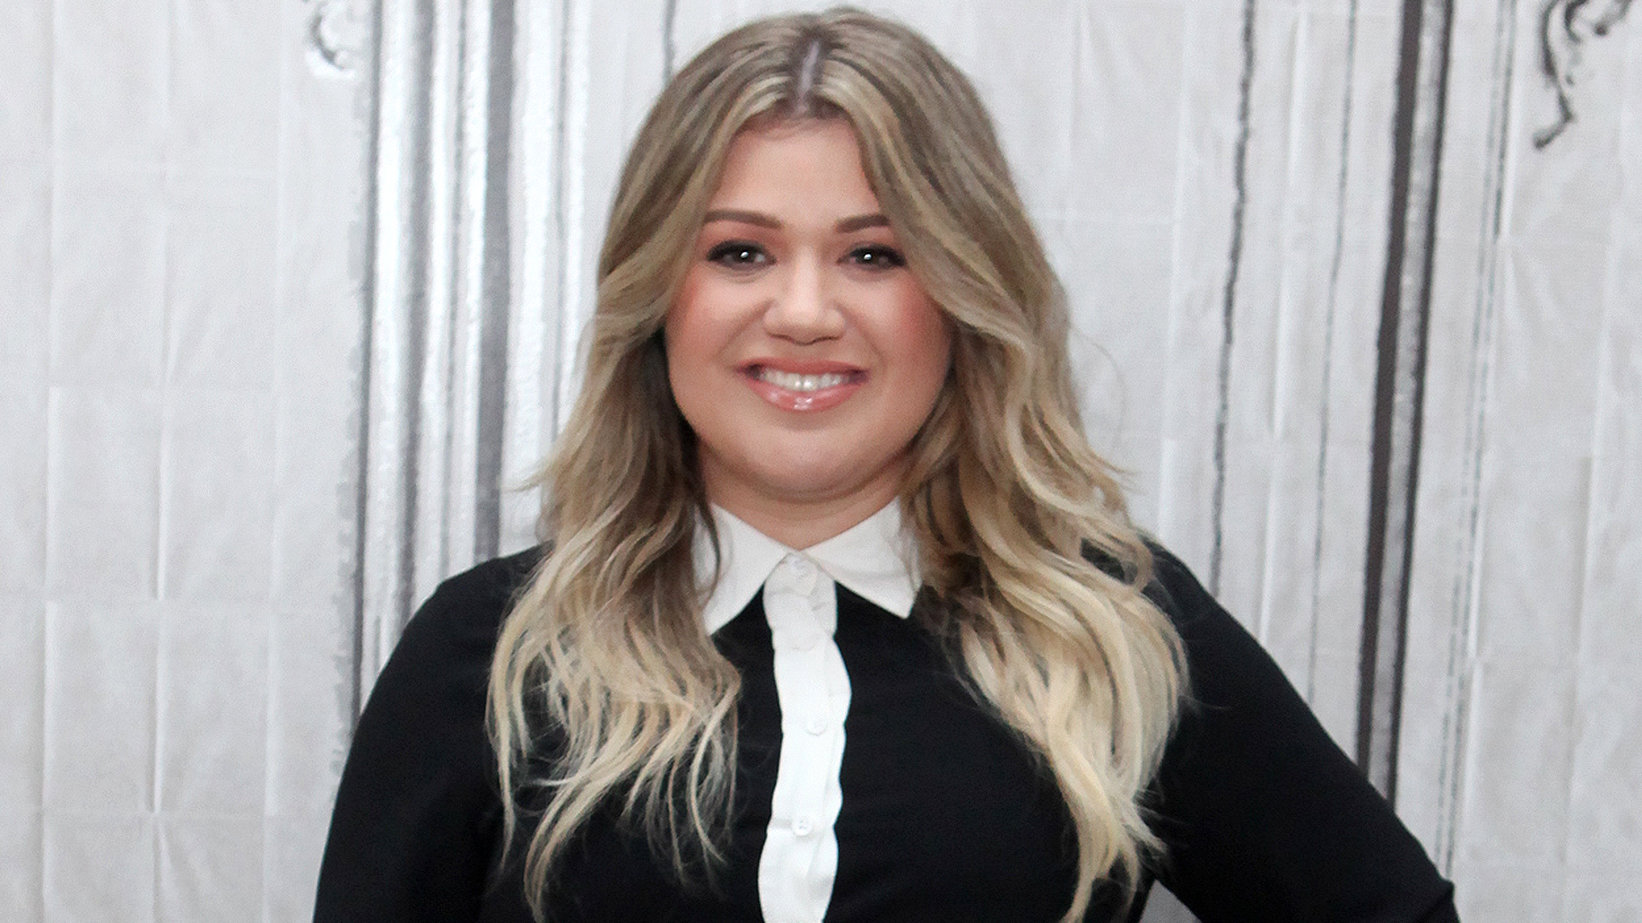 Kelly Clarkson Says a Cancer Scare 'Ruined' the Night She Won Her First Grammys: 'They Had to Redo My Makeup 4 Times'